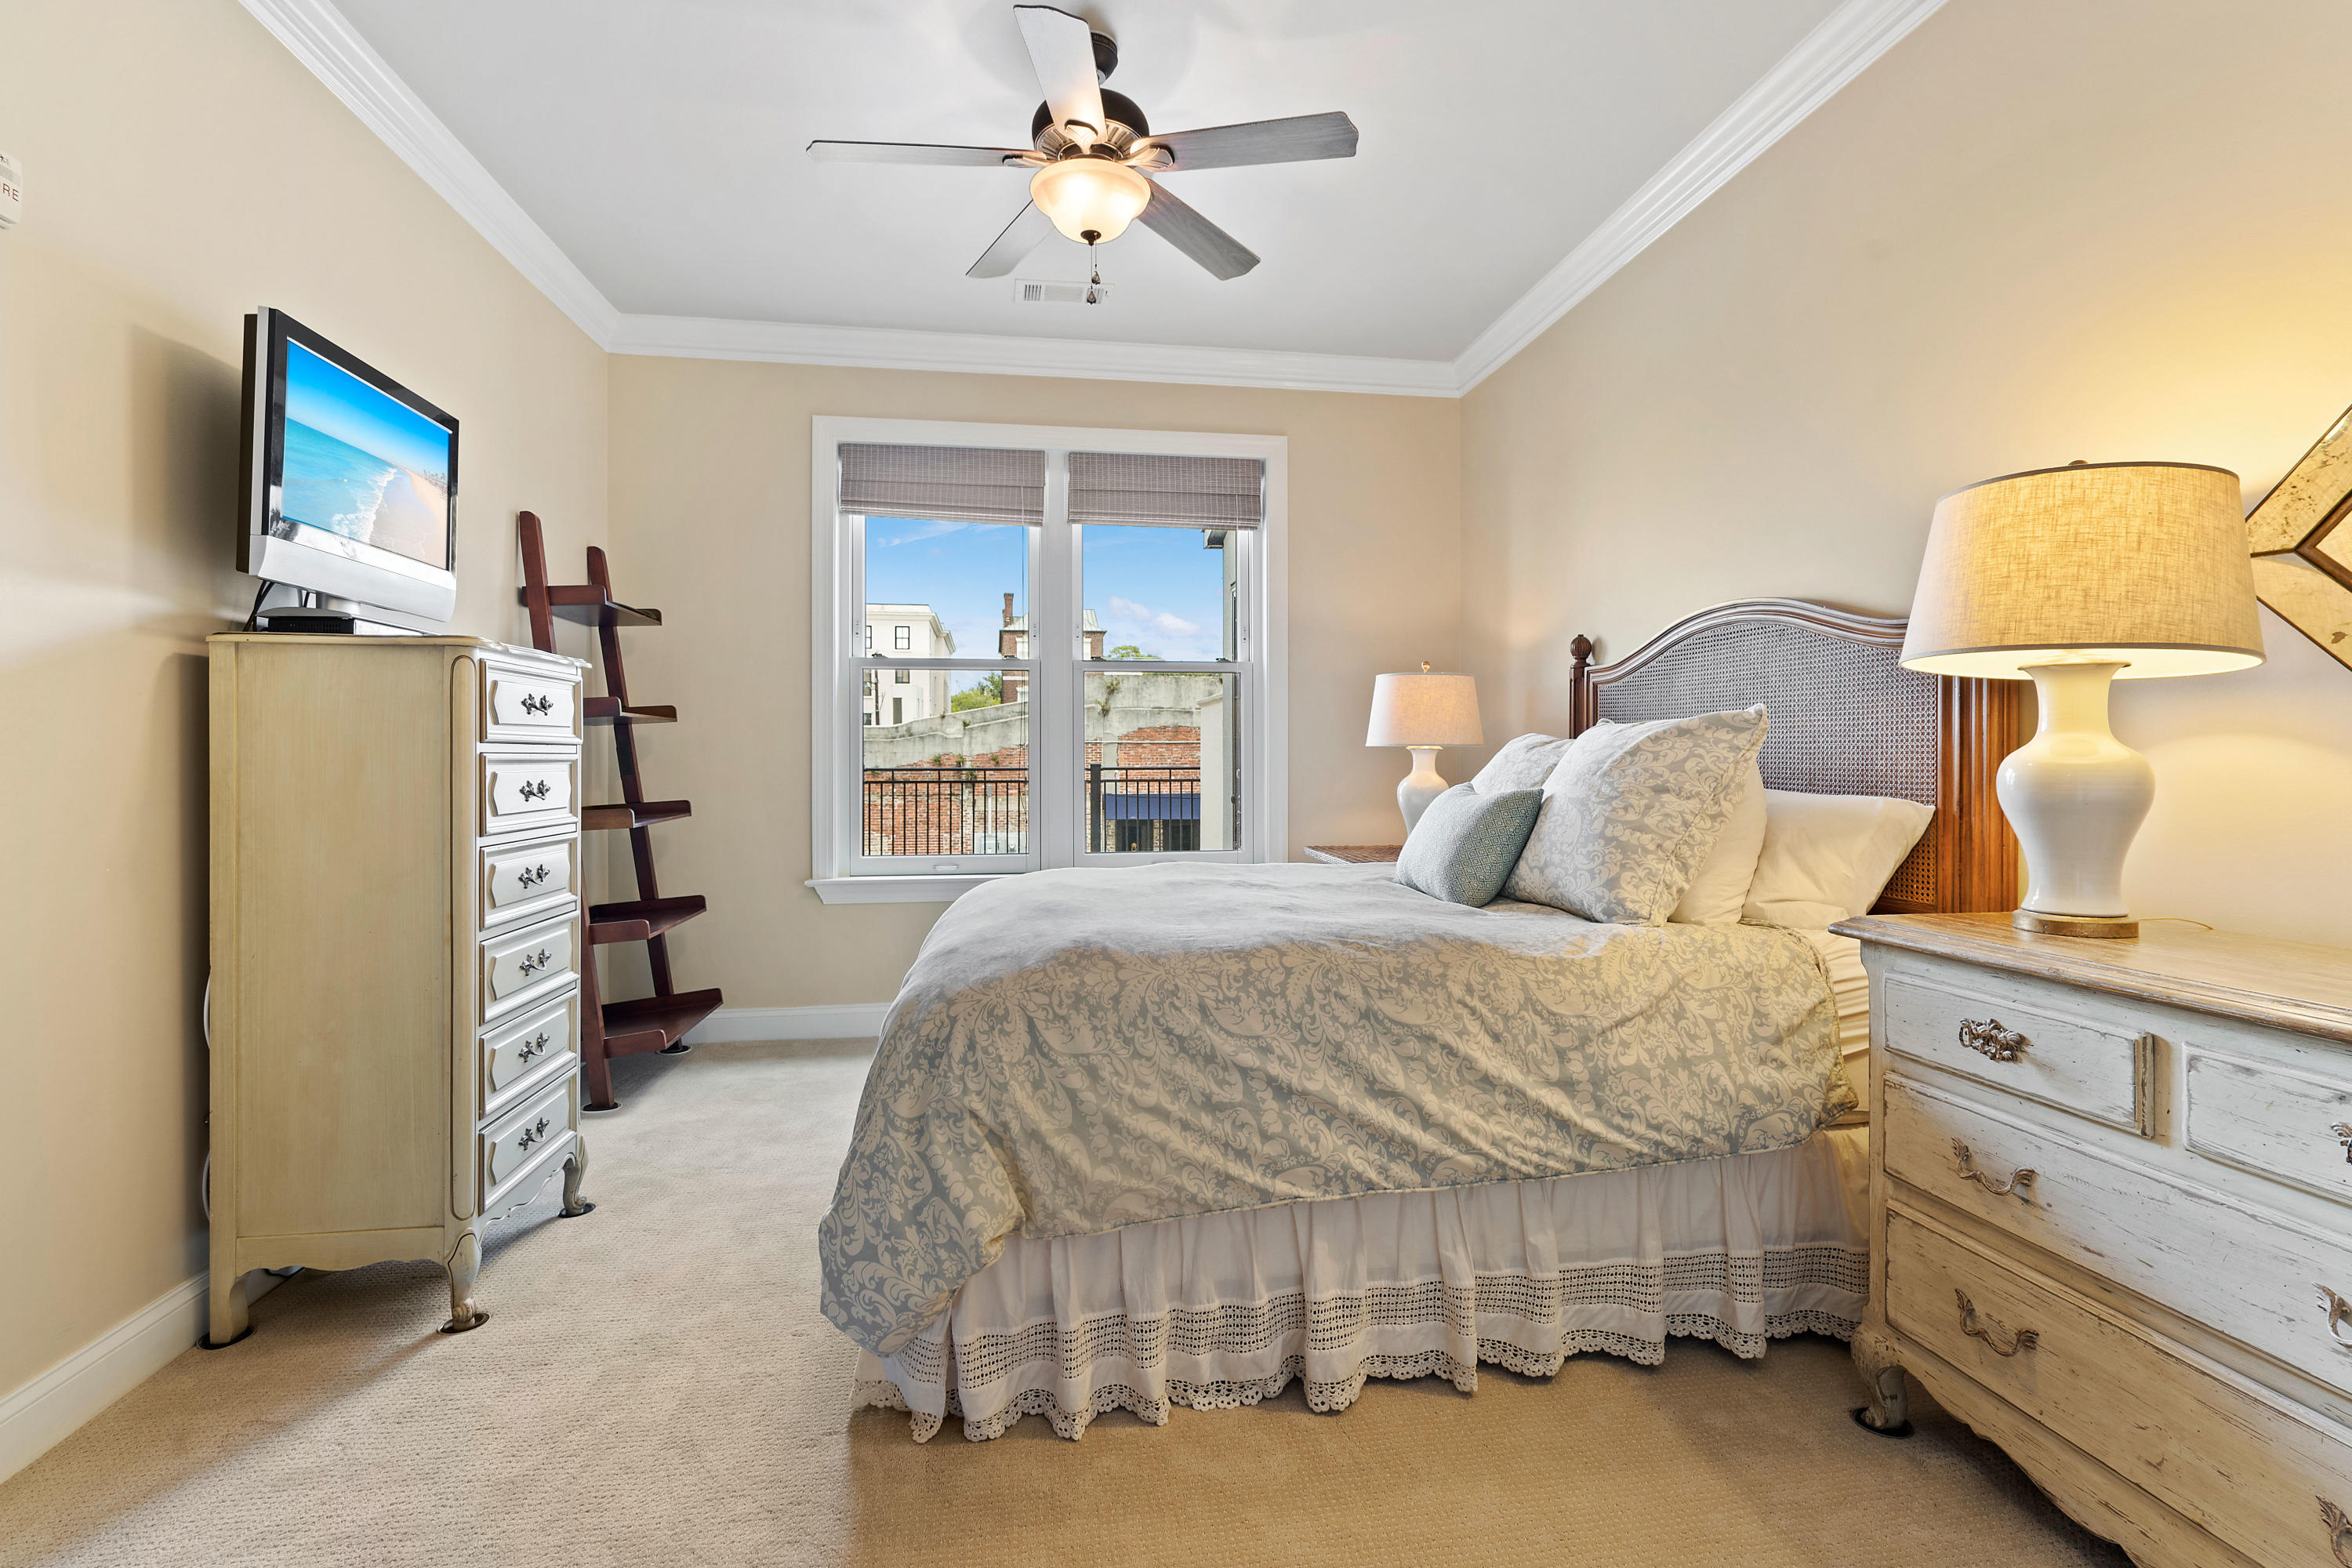 George And Society Condos For Sale - 21 George, Charleston, SC - 21